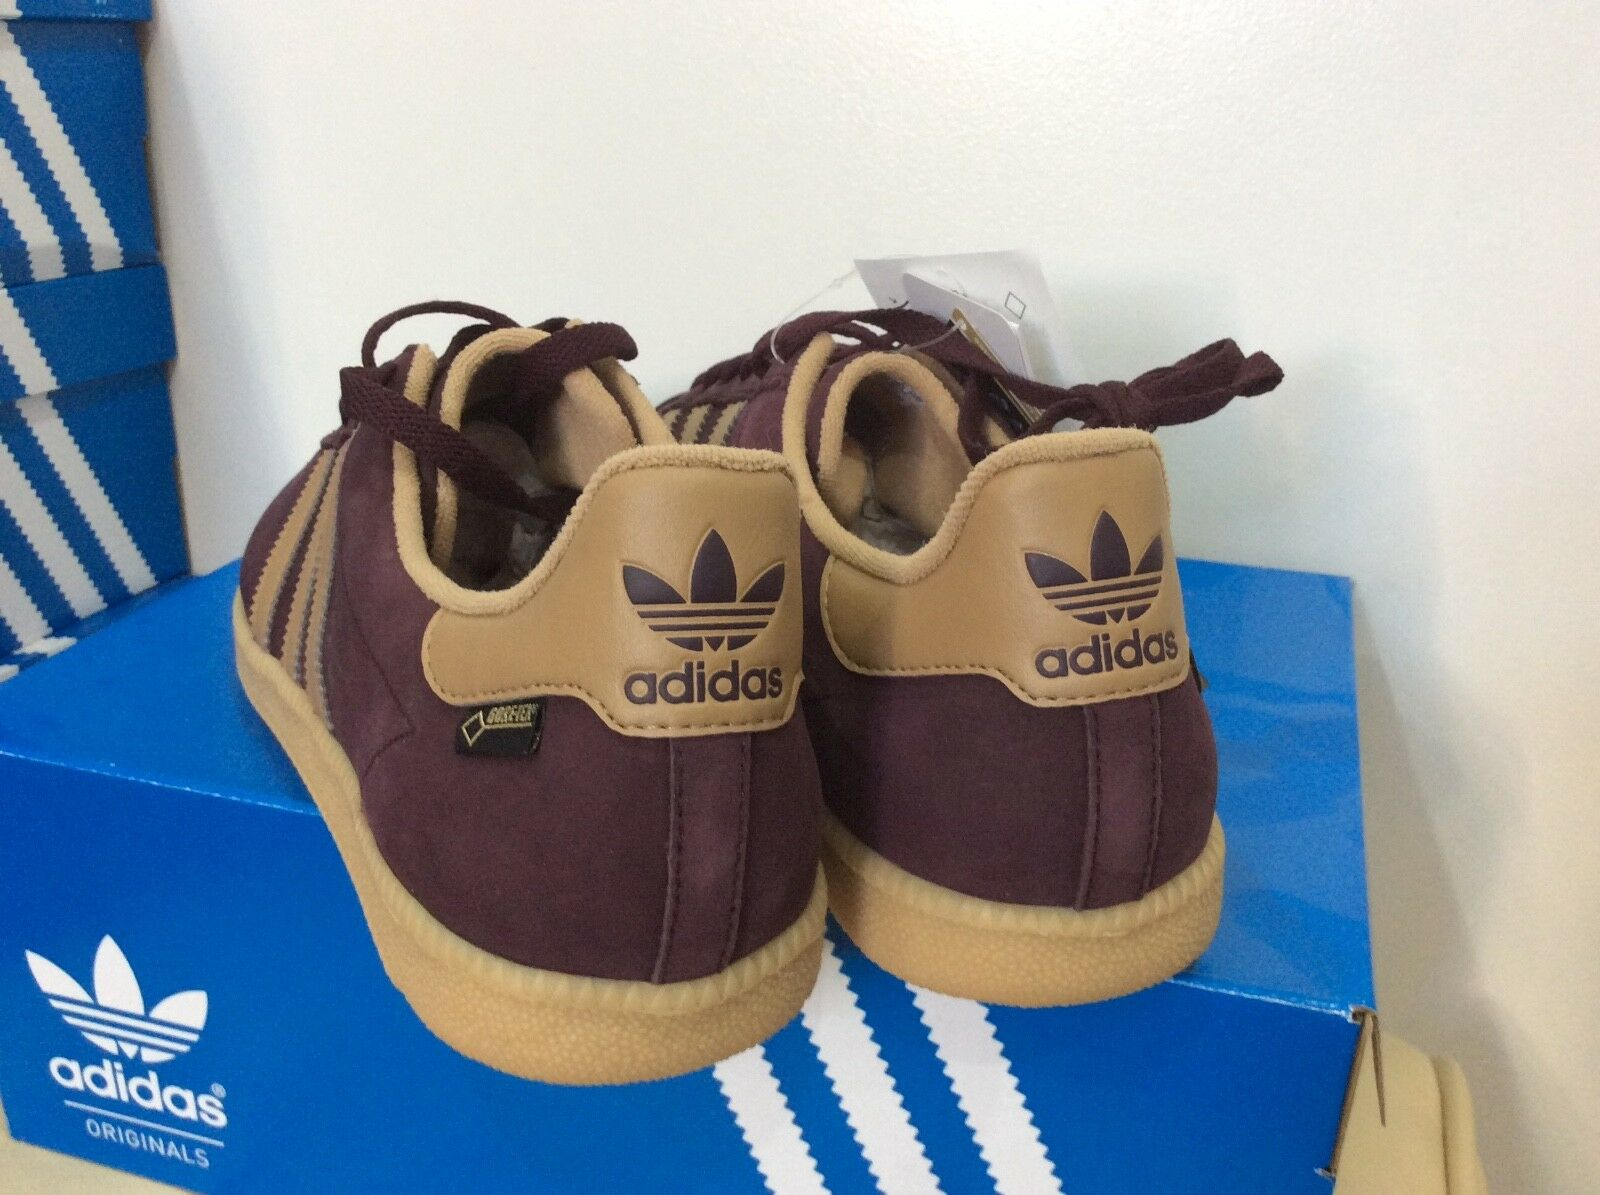 Adidas Stockholm GTX 2017, 2017, 2017, taille Gore-Tex, Brand New in Box d6340e